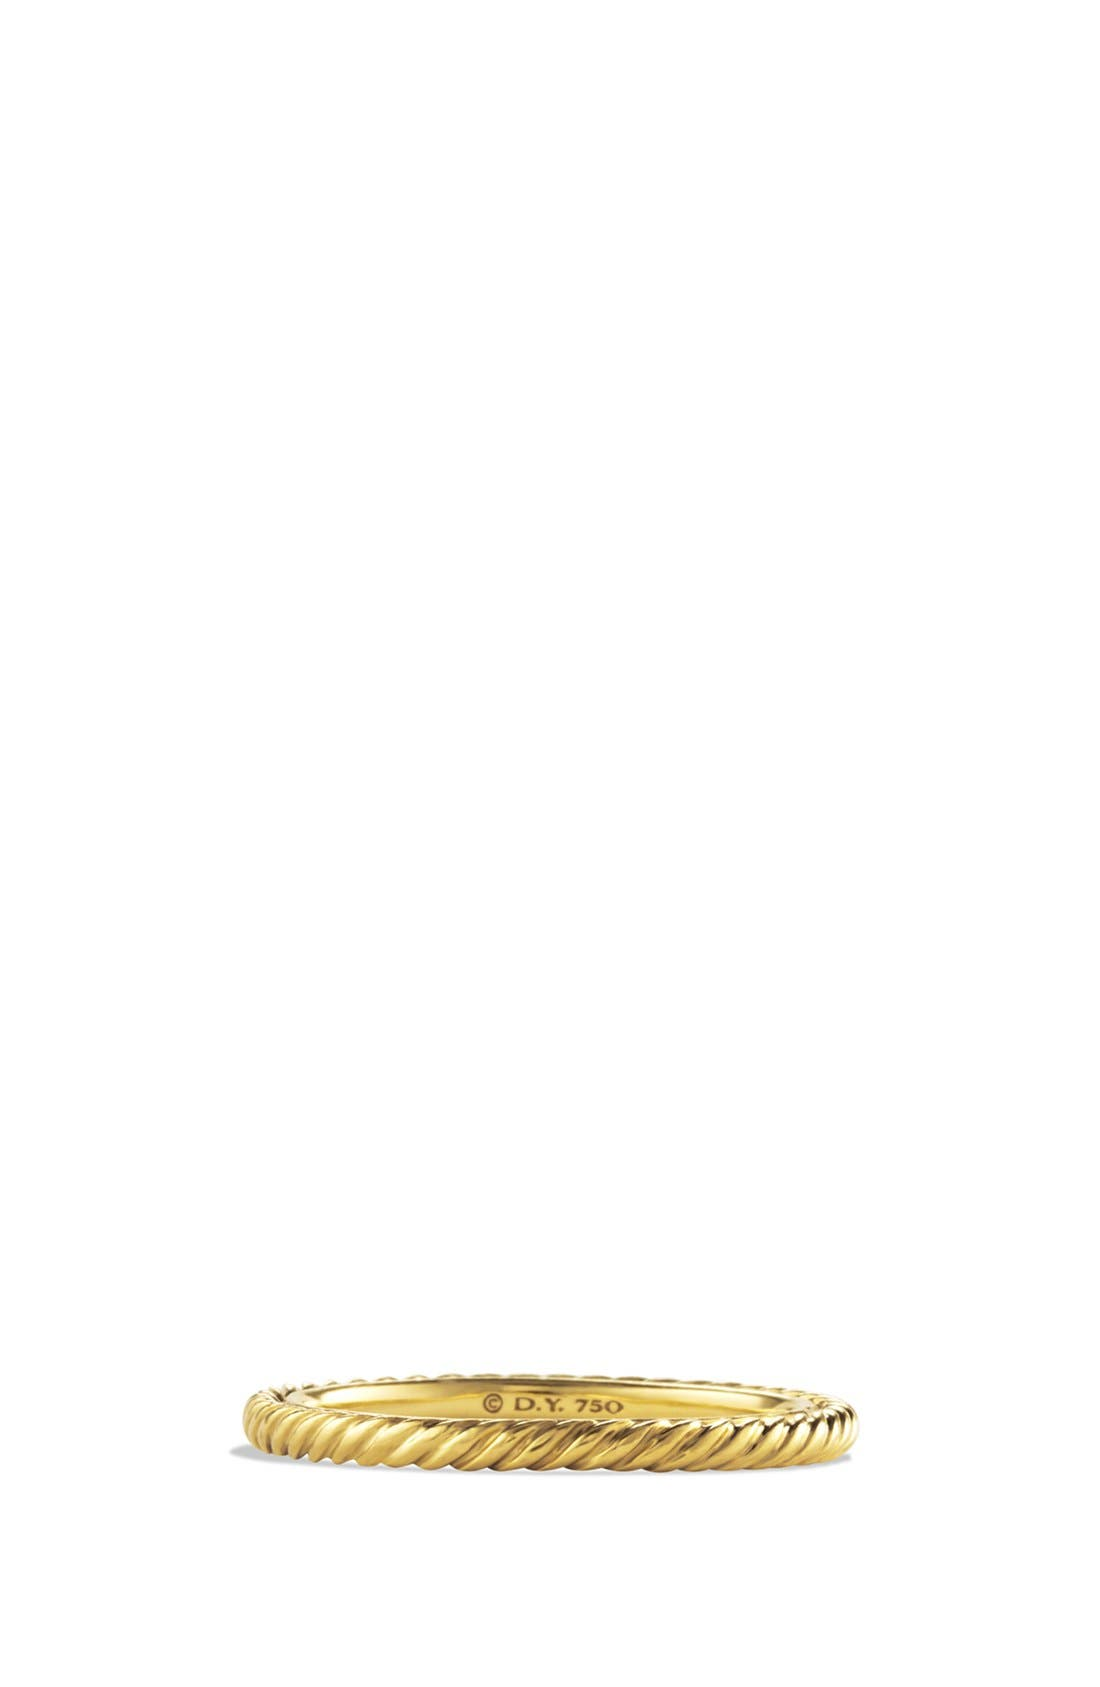 Main Image - David Yurman 'Cable' Band Ring in Gold